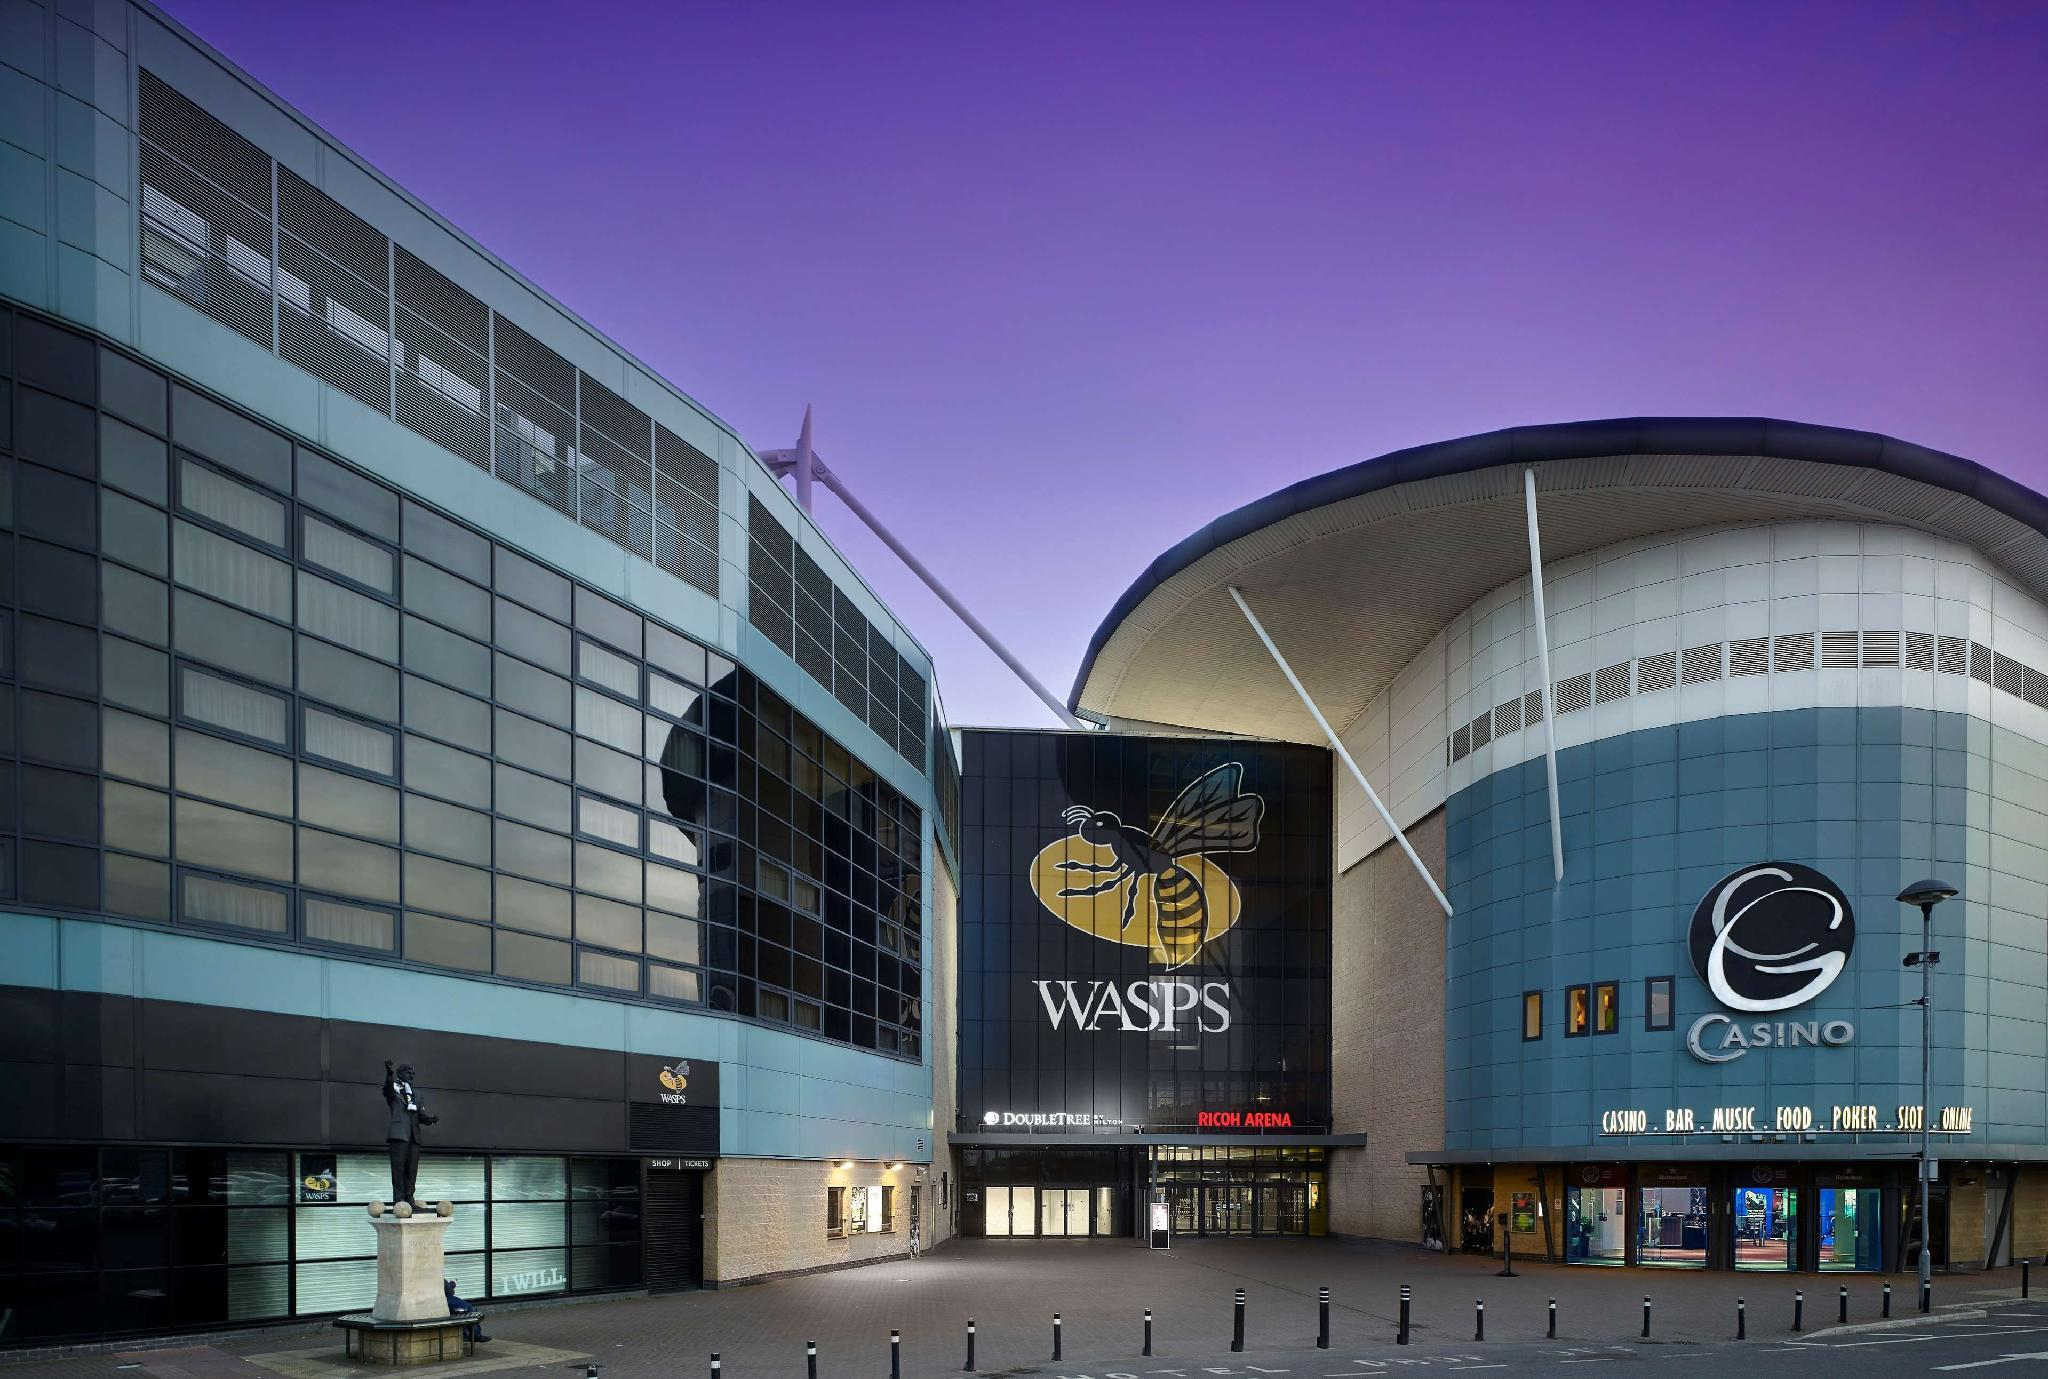 Doubletree by Hilton at the Ricoh Arena - Coventry